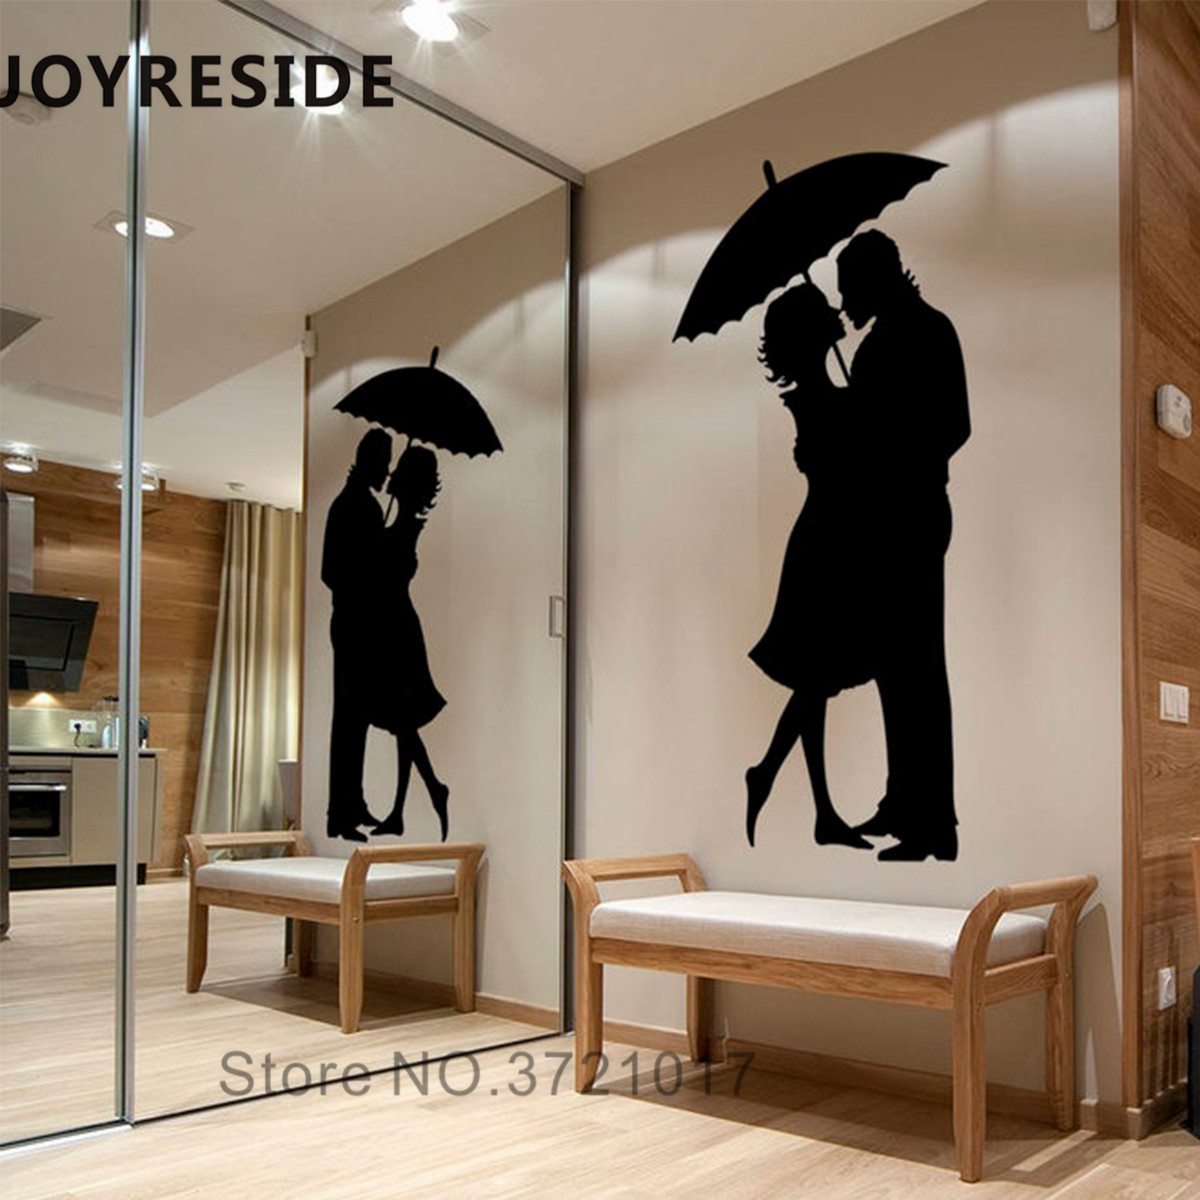 Lover love girl Home Room Decor Removable Wall Stickers Decal Decoration